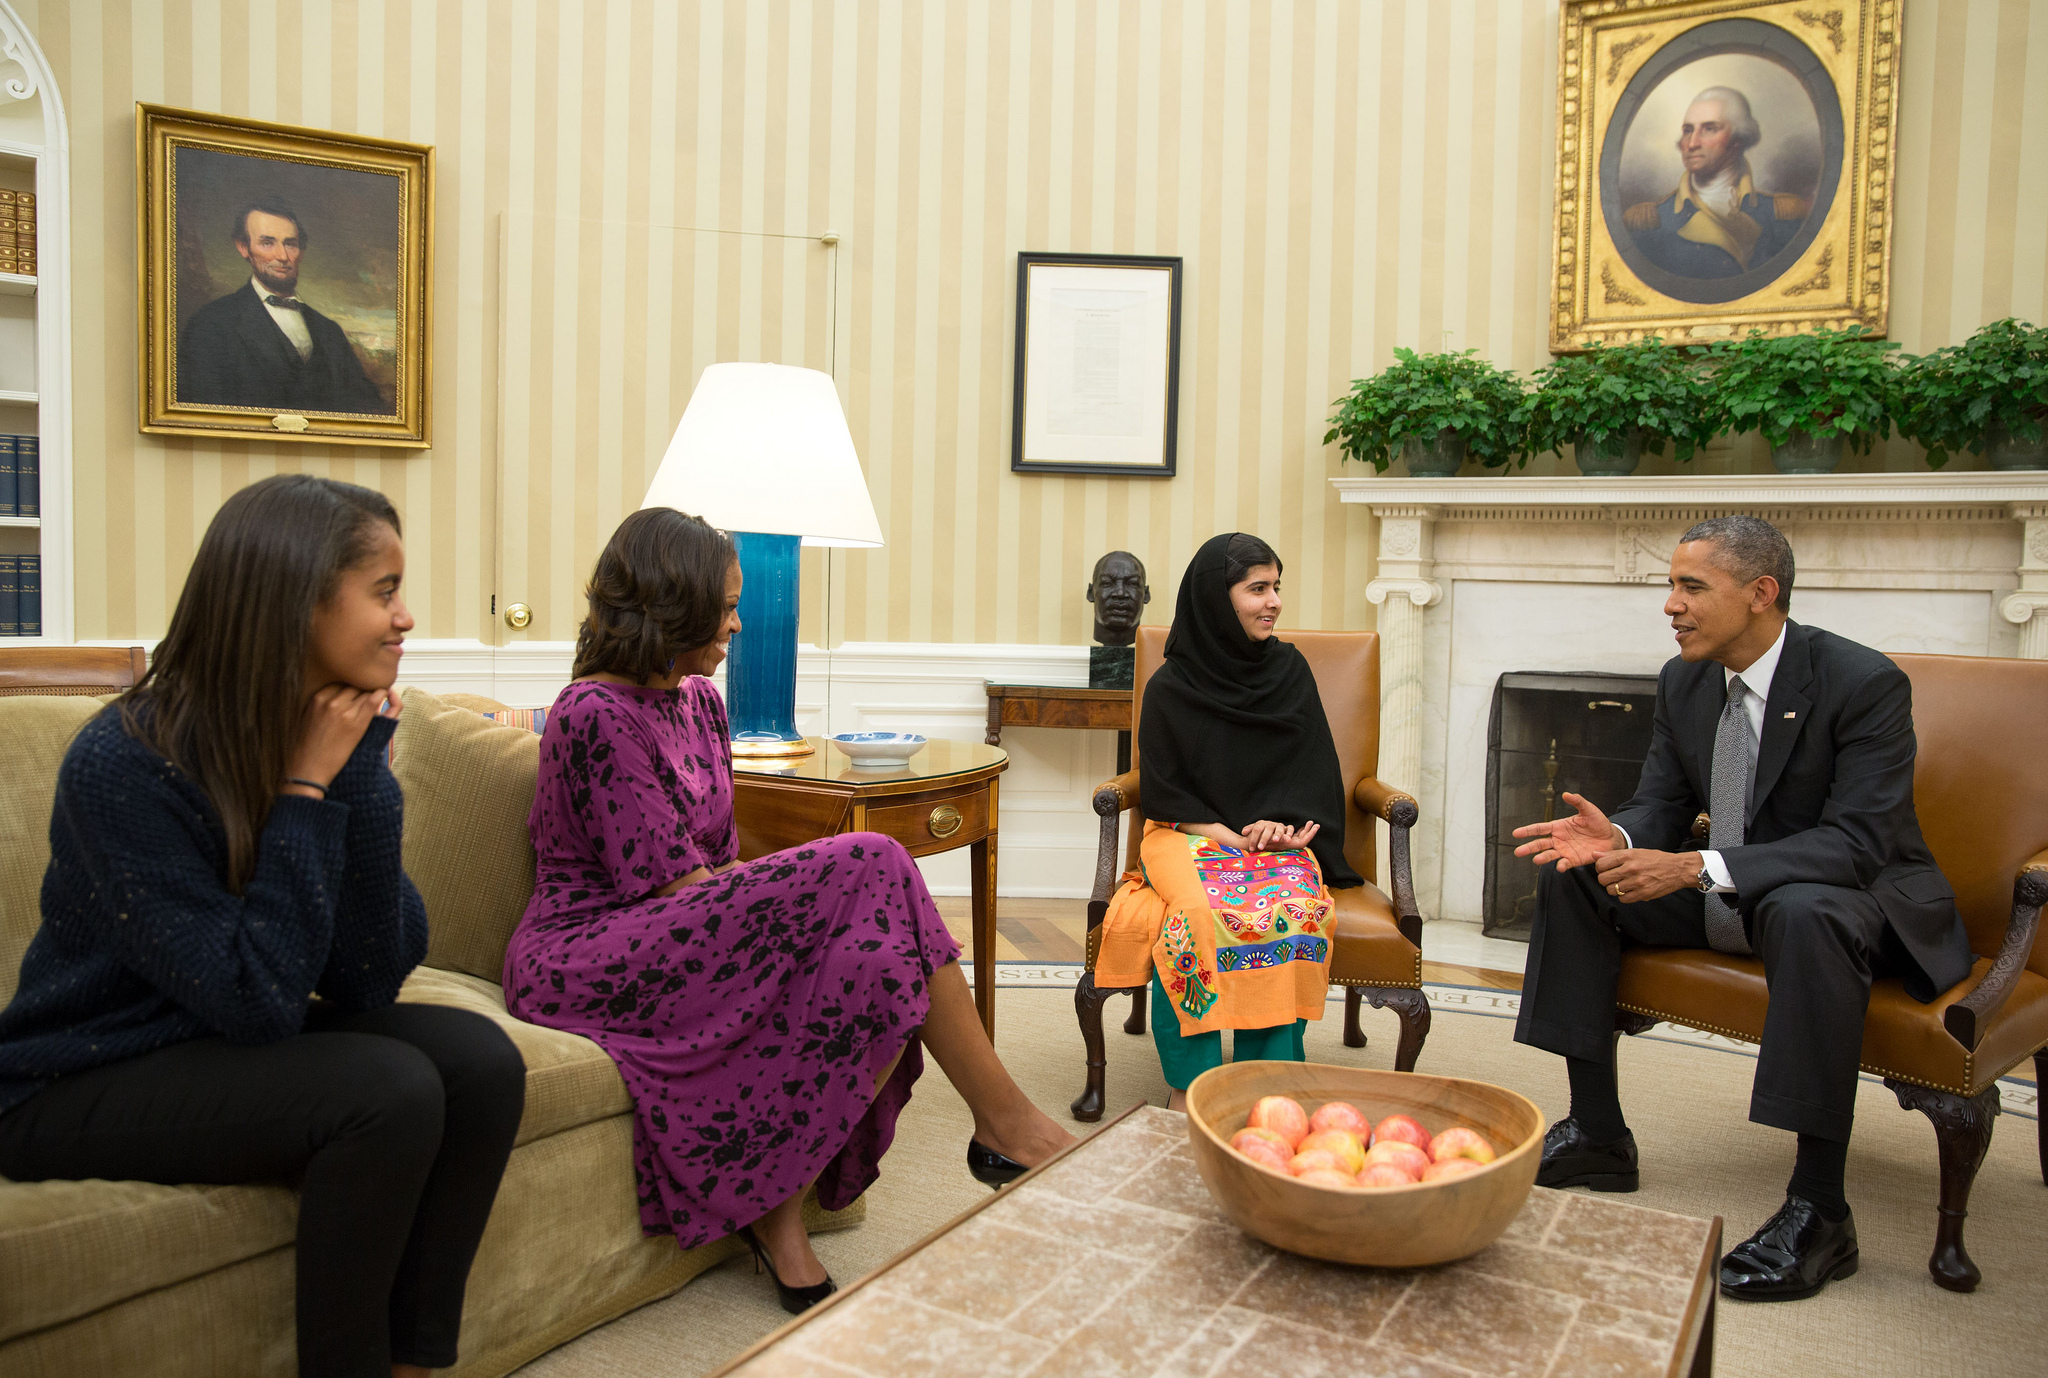 U.S. President Barack Obama, First Lady Michelle Obama and their daughter Malia meet with Malala. Credit:  White House